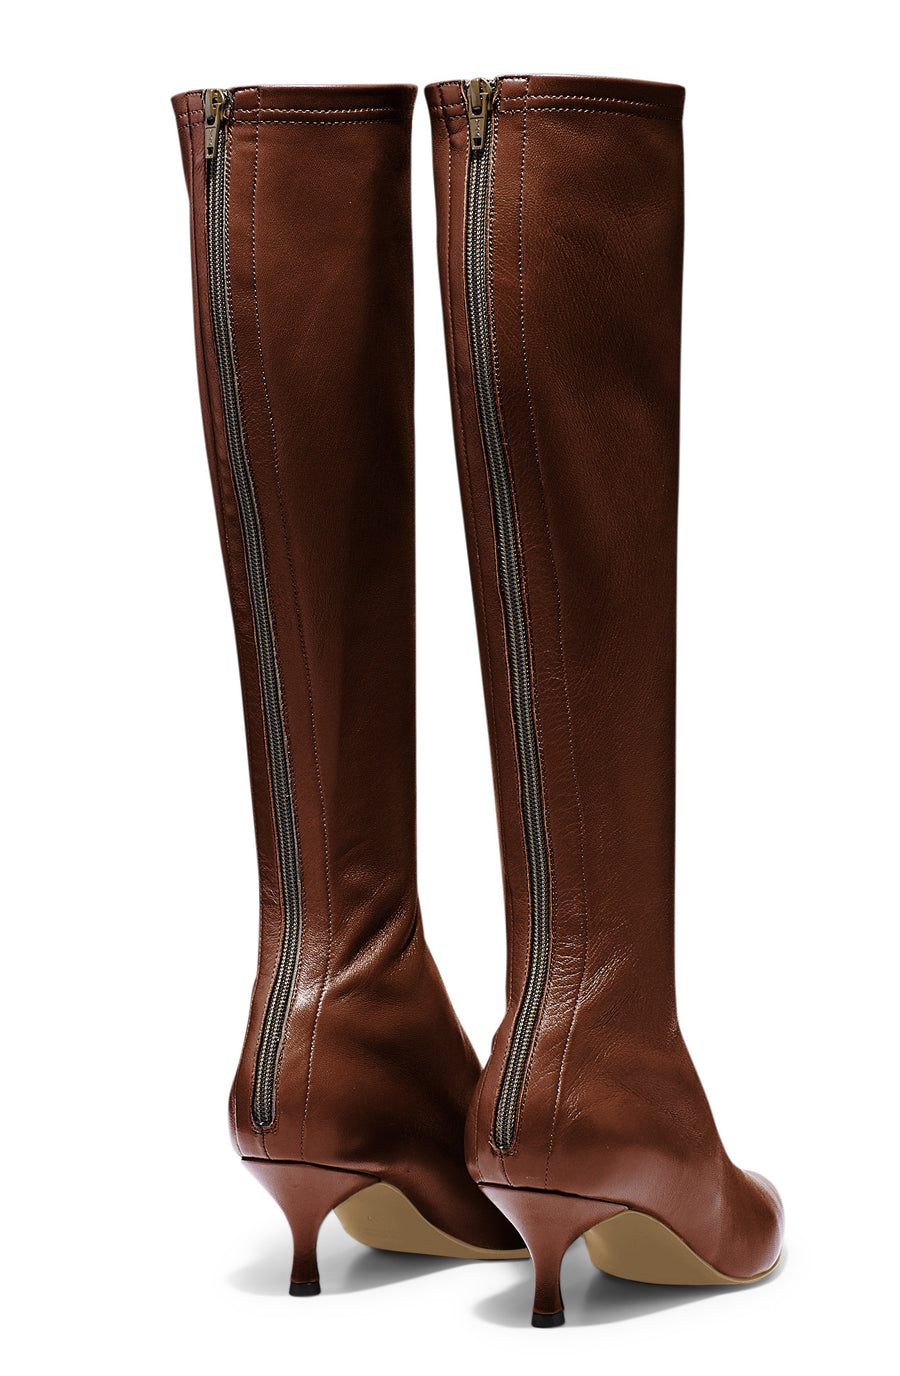 Stretch Leather Knee High Boot 6, fitted pointed toe boot, centre back zip, leather lining, leather sole, italian lamb nappa leather, color cognac